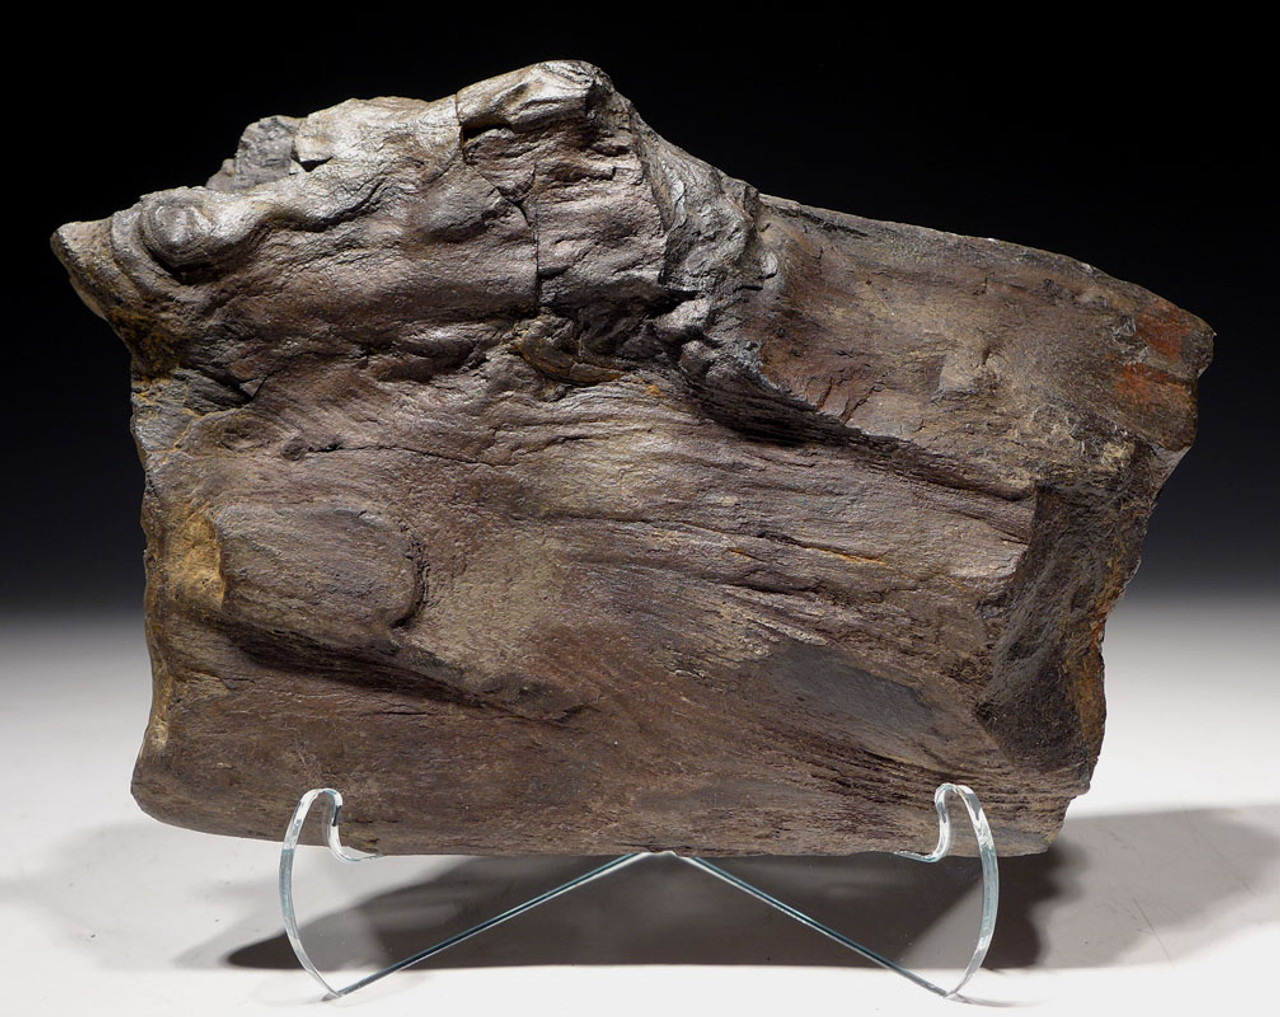 PL155 - PETRIFIED LOG WITH AMAZING FOSSILIZED WOOD GRAIN AND PERMINERALIZED DETAIL FROM EUROPE